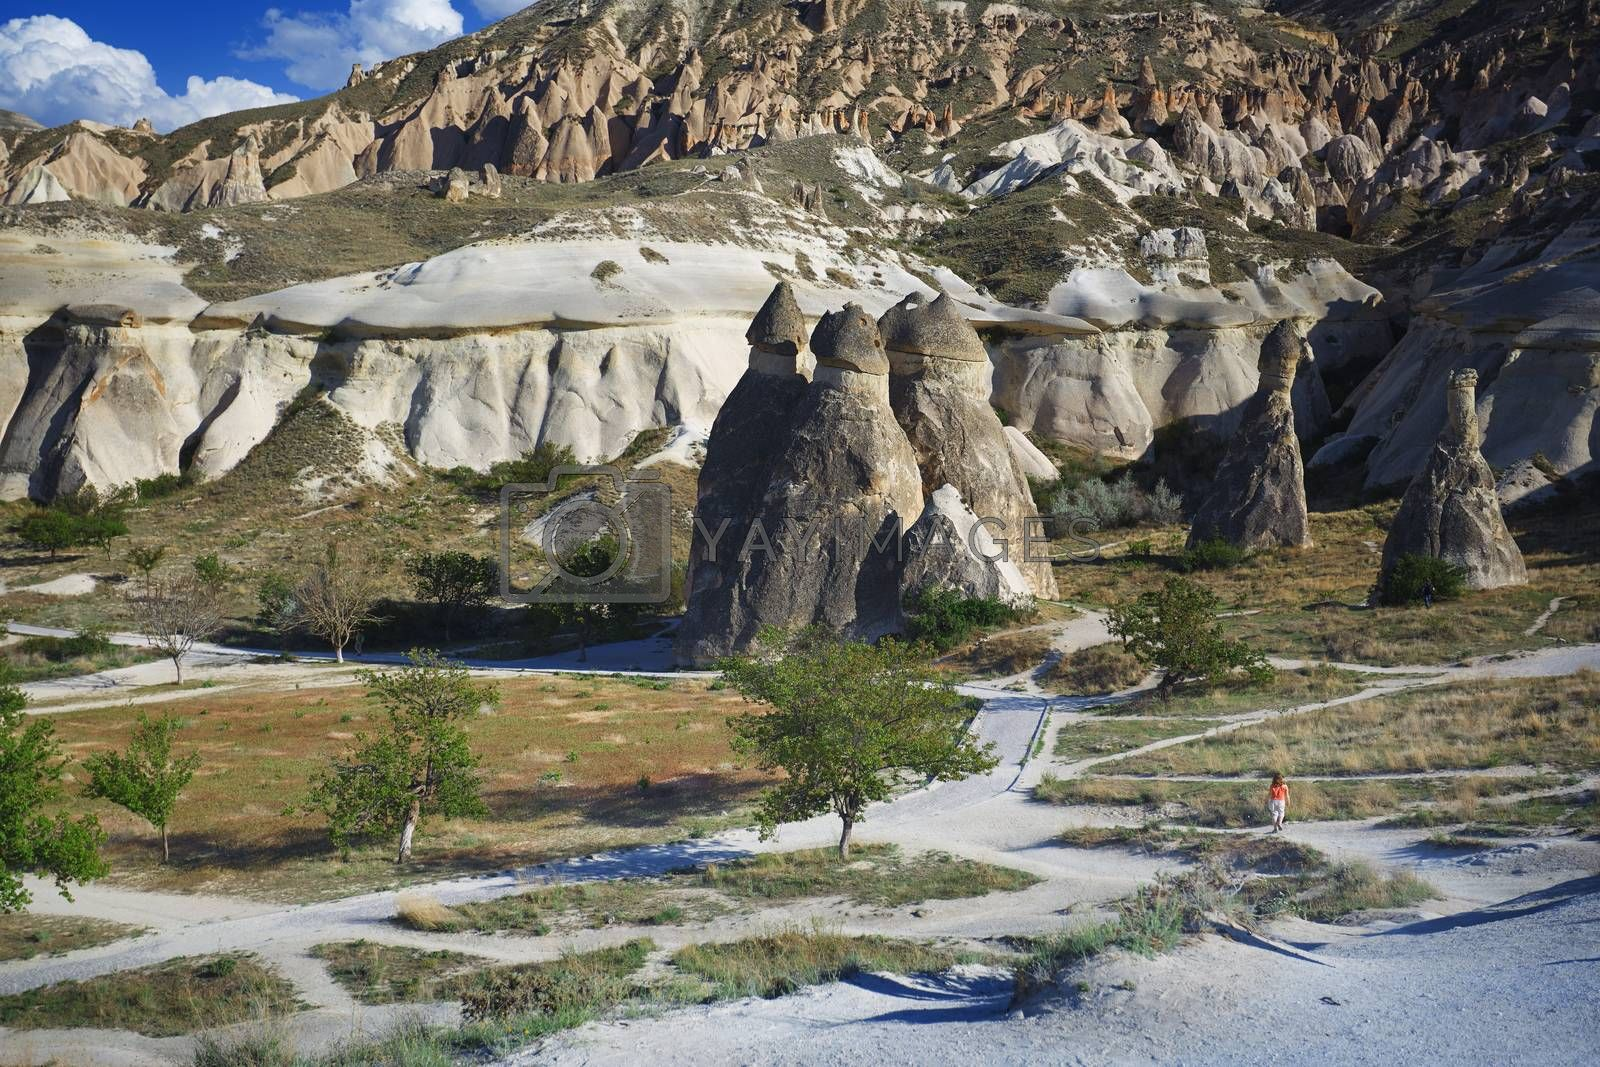 Limestone and tuff rock formations in Cappadocia by Novic